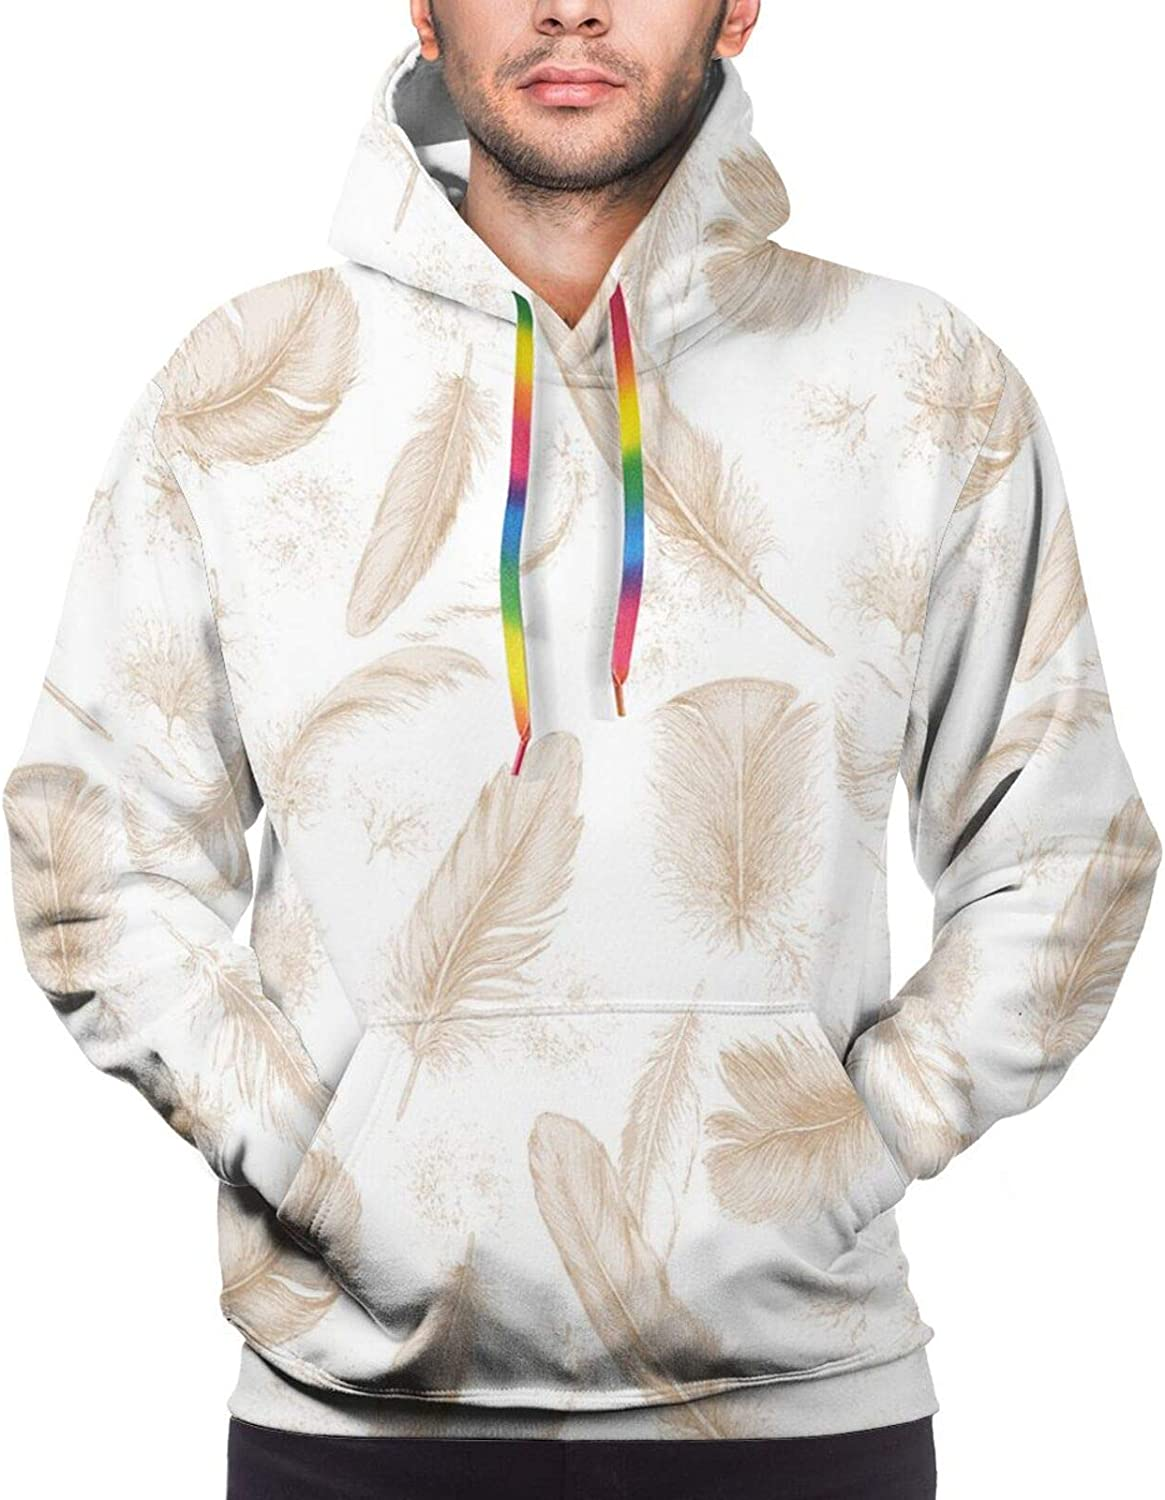 Men's Hoodies Sweatshirts,Fluffy Cloud Illustrations with Scribbles Up in The Sky